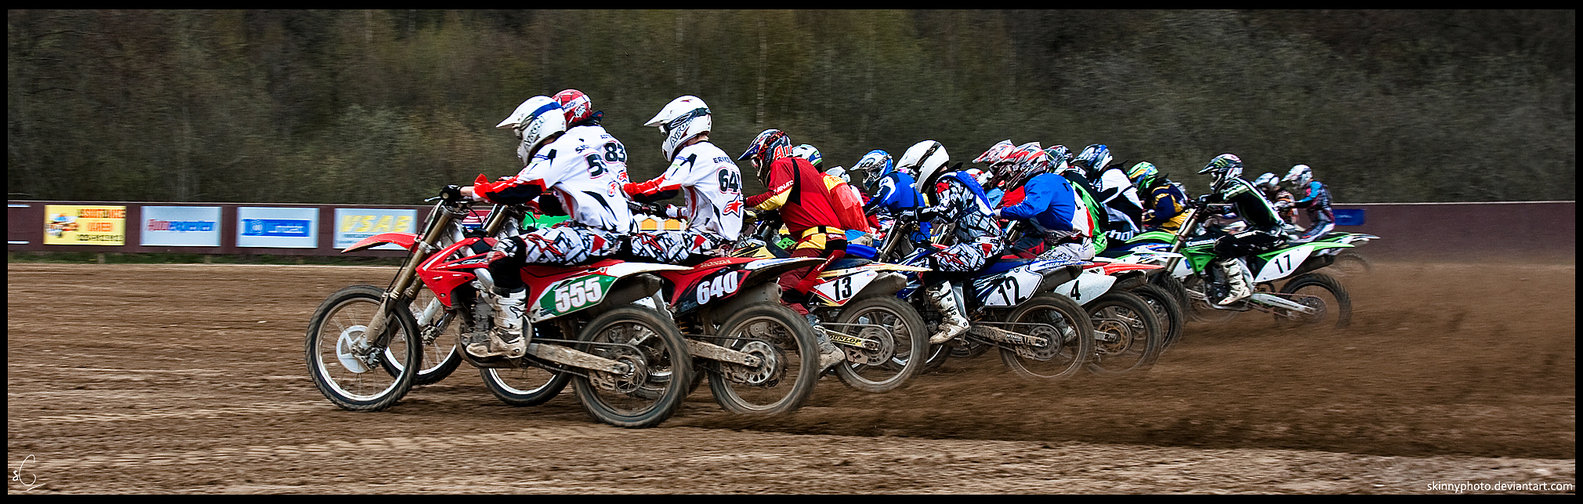 MX_bike_Race